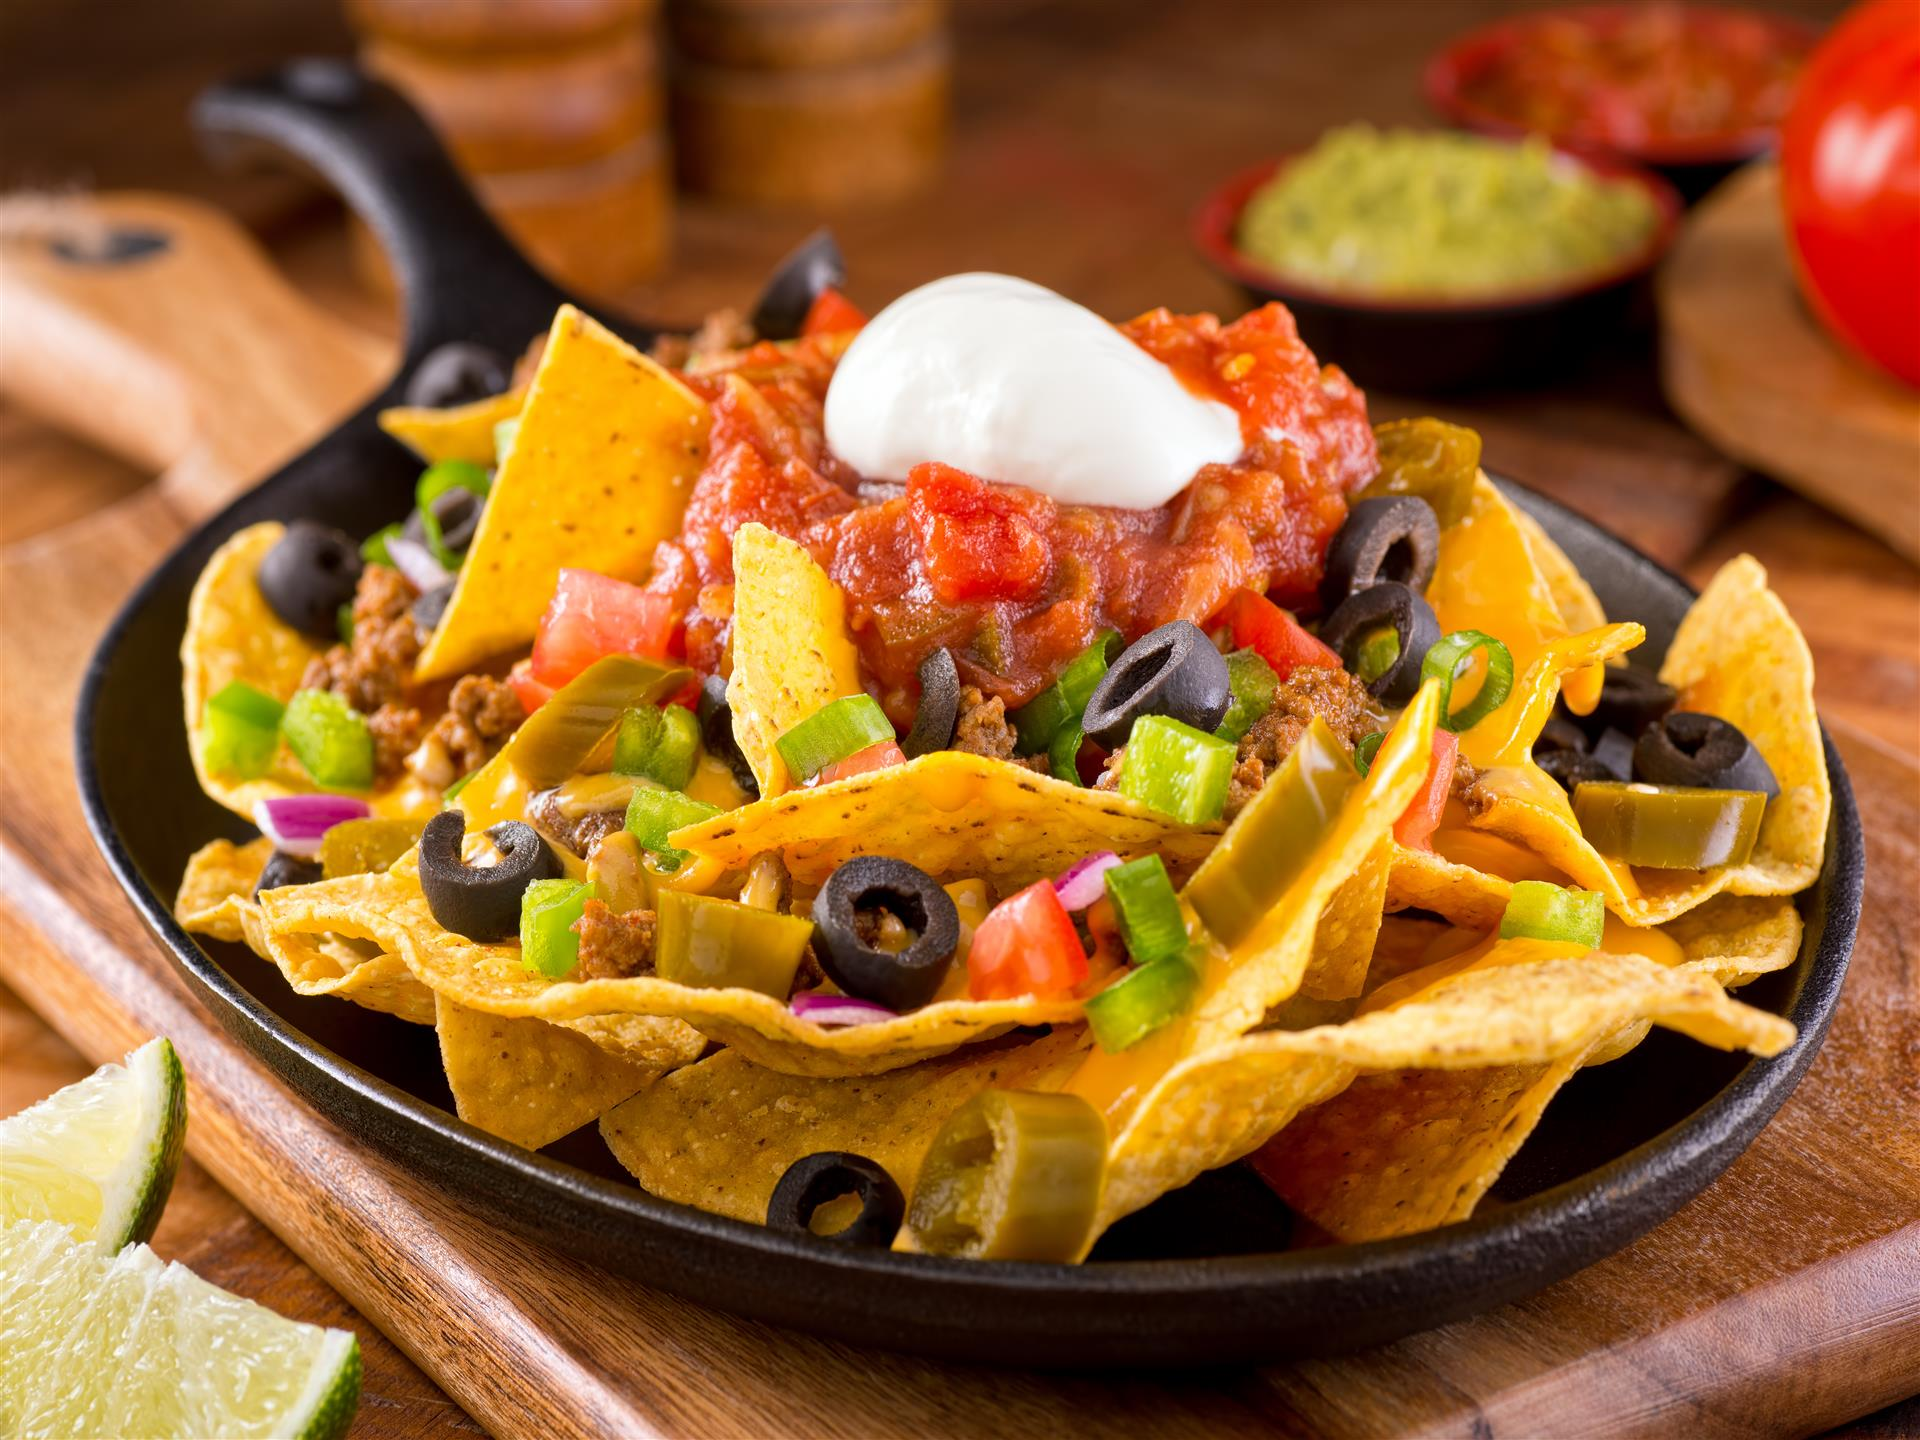 Nachos with olives, salsa, sour cream and jalapeños